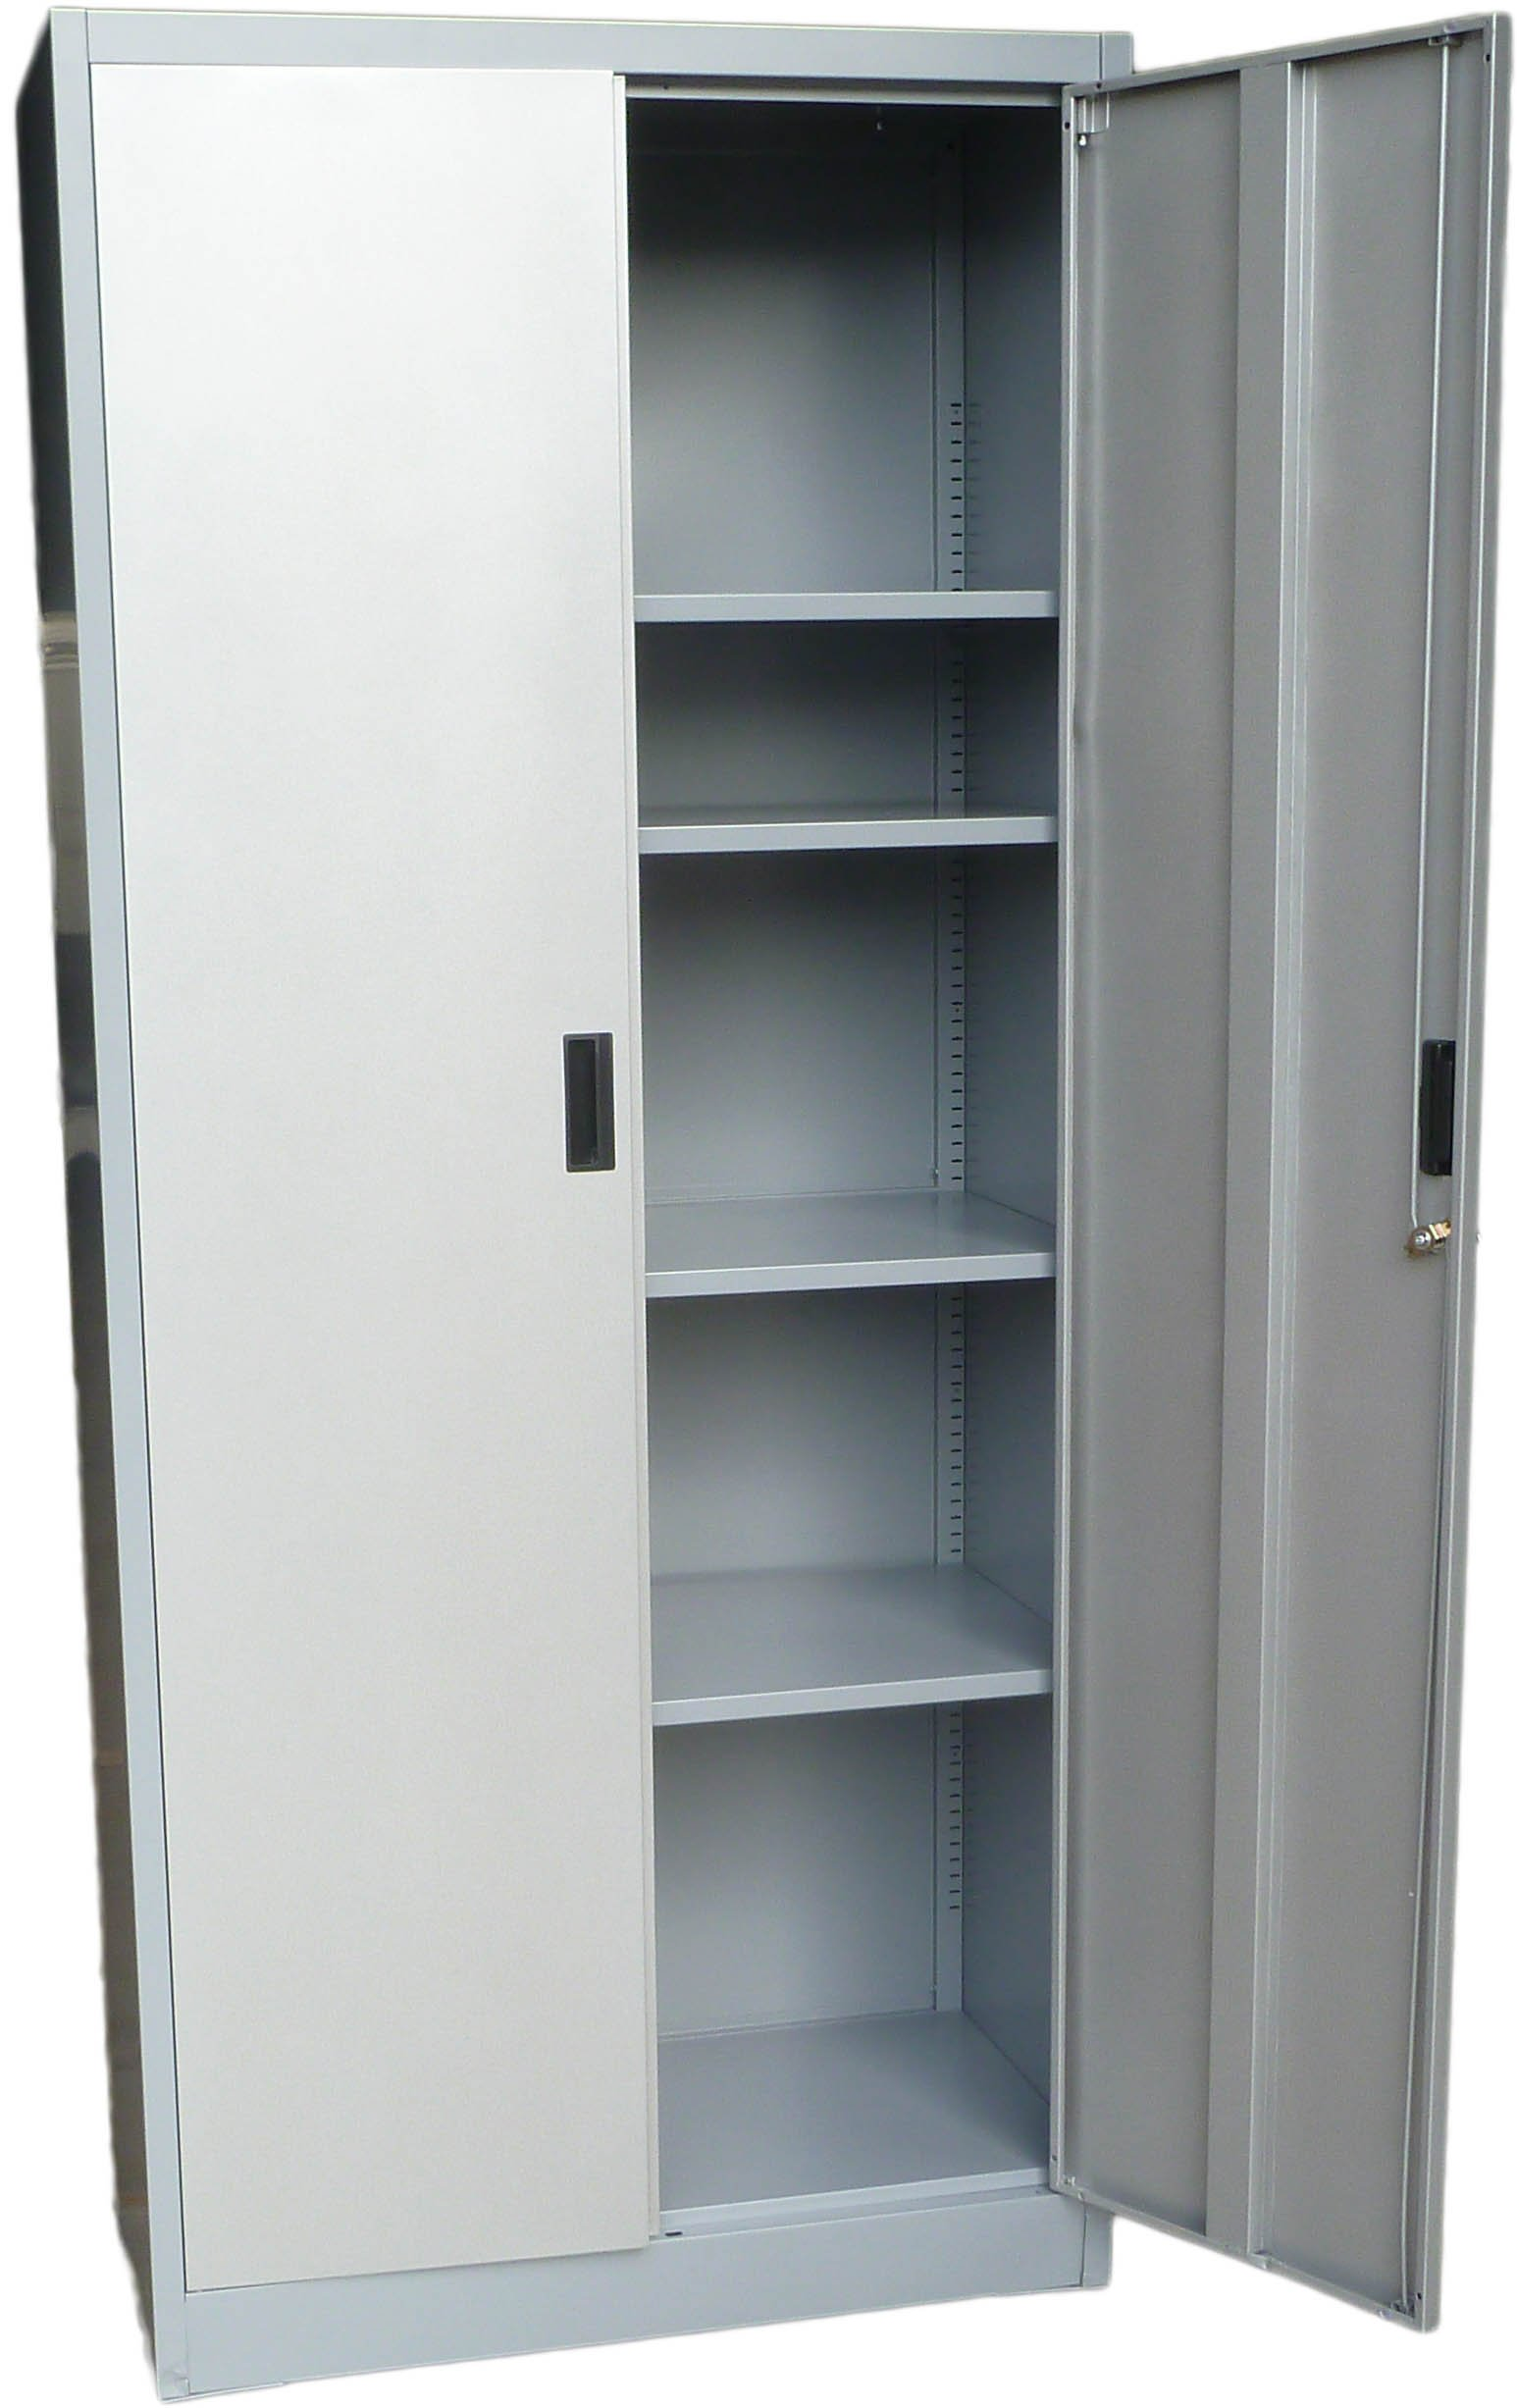 Fedmax Steel Storage Cabinet 71'' Tall, Lockable Doors and Adjustable Shelves, (Choose Color) 70.86'' Tall x 31.5'' W x 15.75'' D (Gray)